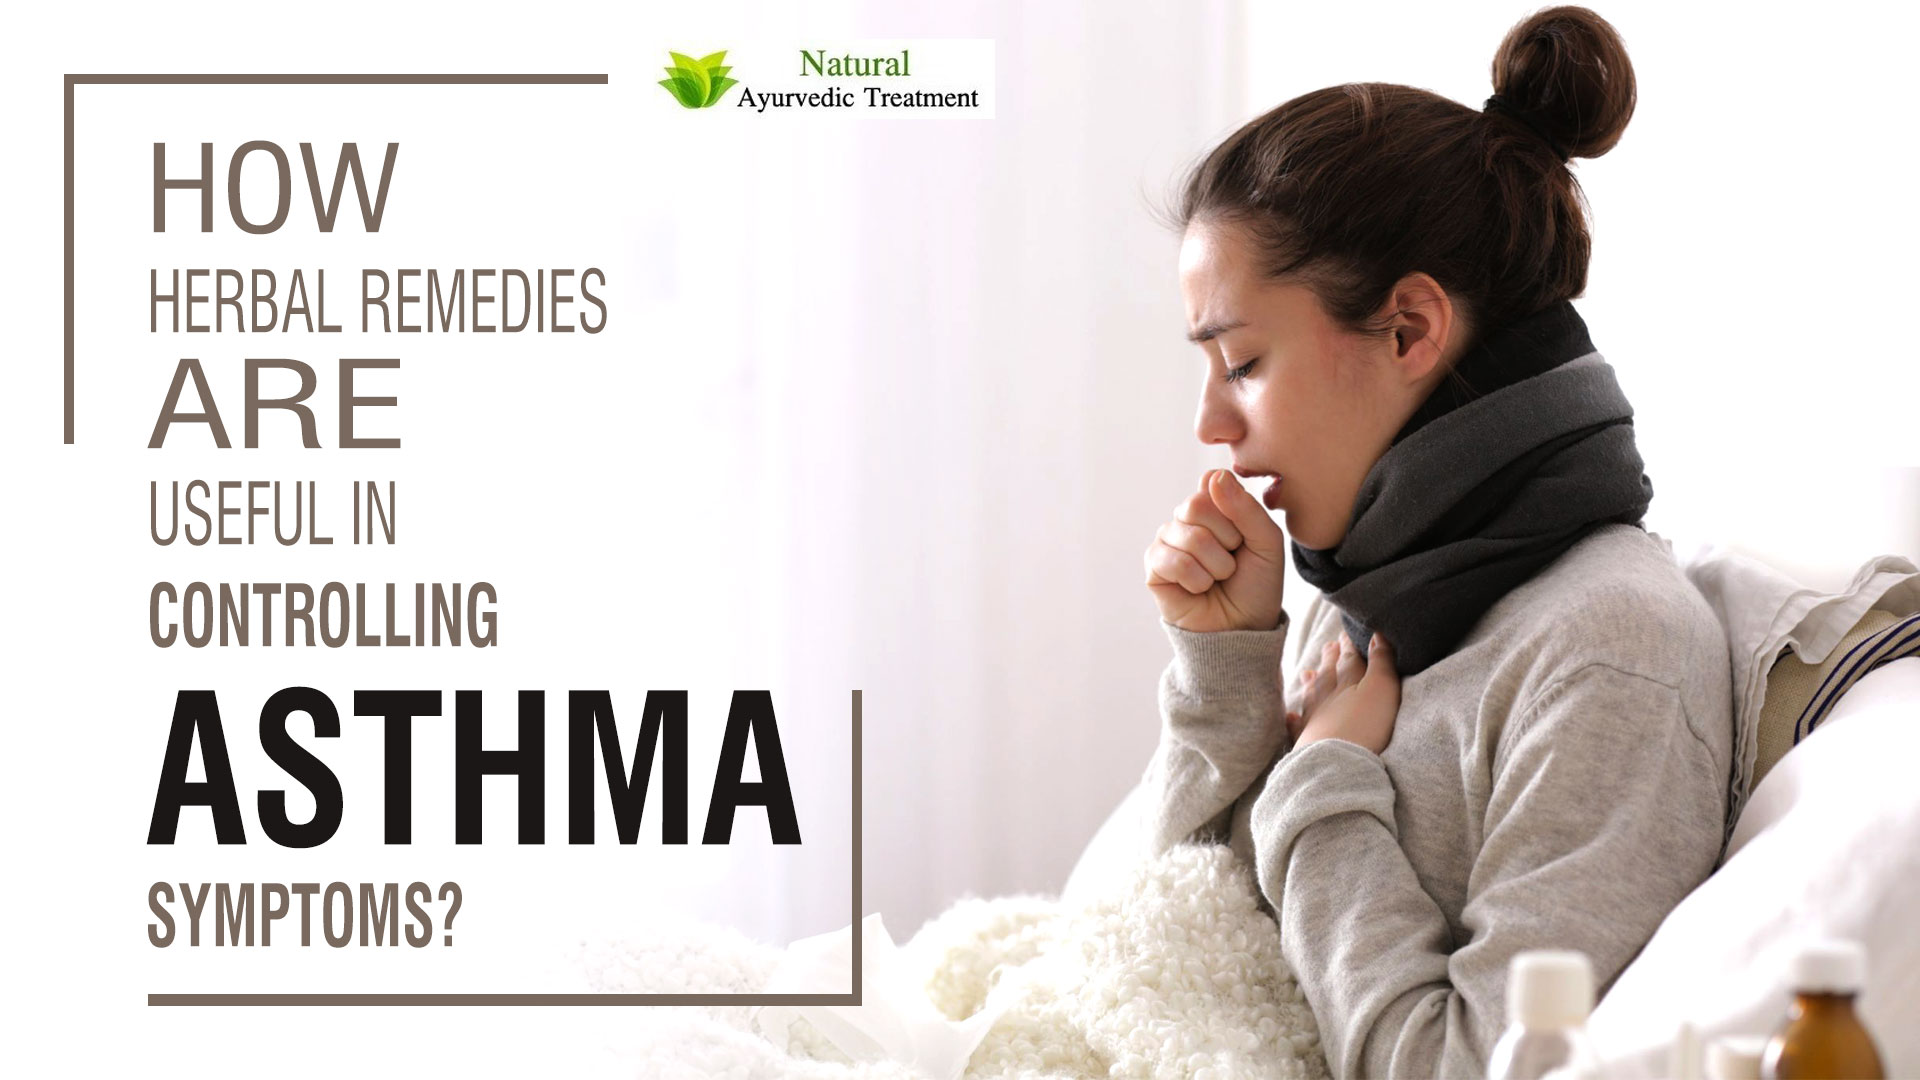 How Herbal Remedies are Useful in Controlling Asthma Symptoms?